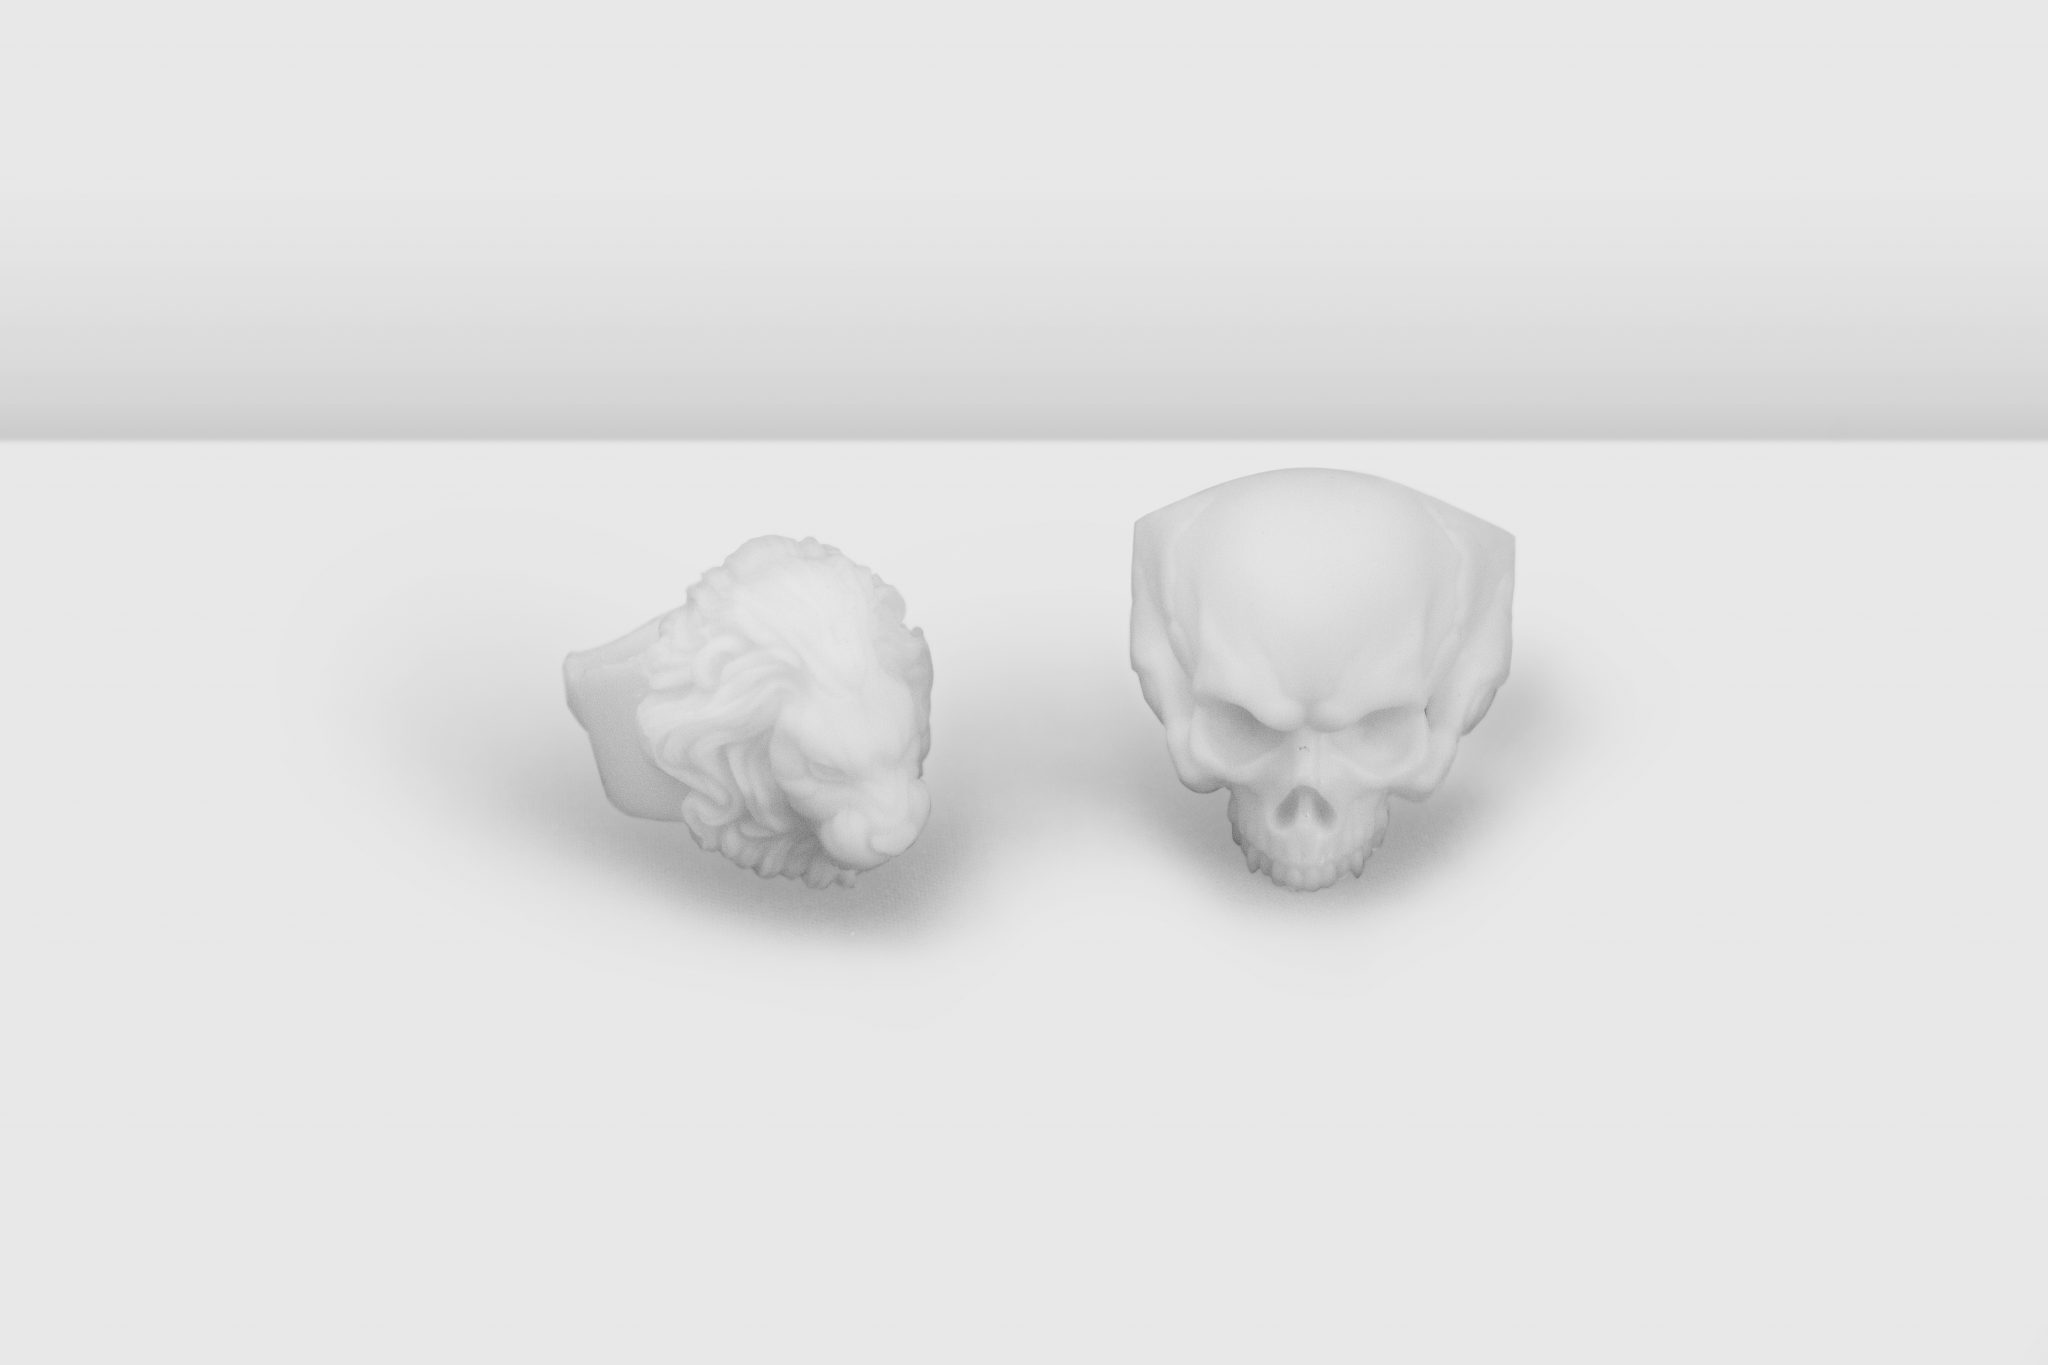 The skull and lion 3D printed models.